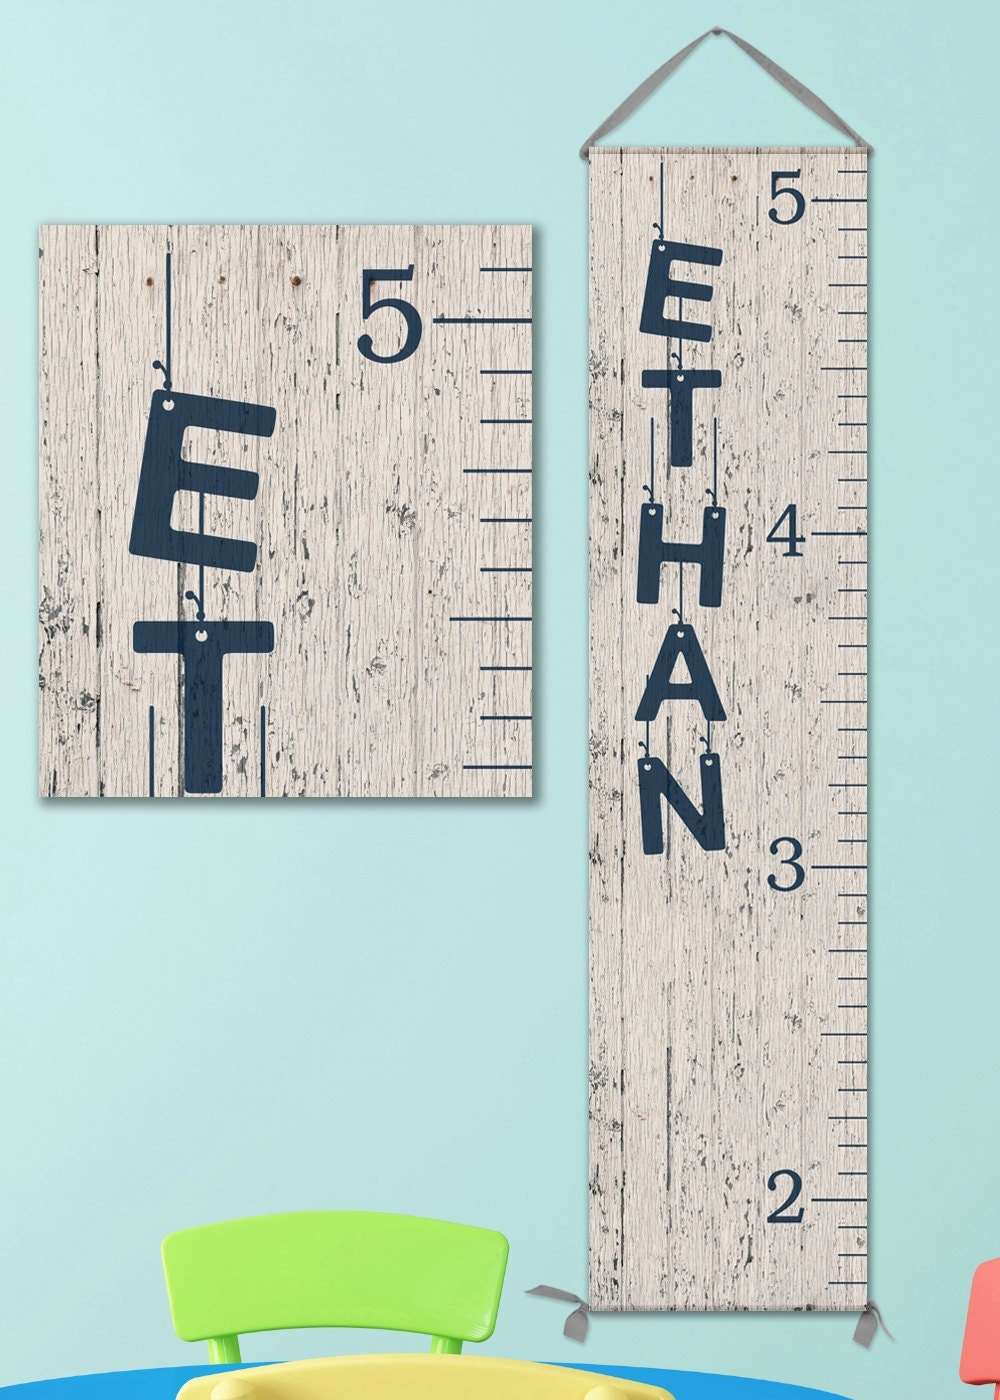 Canvas growth chart personalized image of wood growth chart canvas growth chart personalized image of wood growth chart ruler personalized baby boy gifts growth chart boy gc0100n nvjuhfo Choice Image